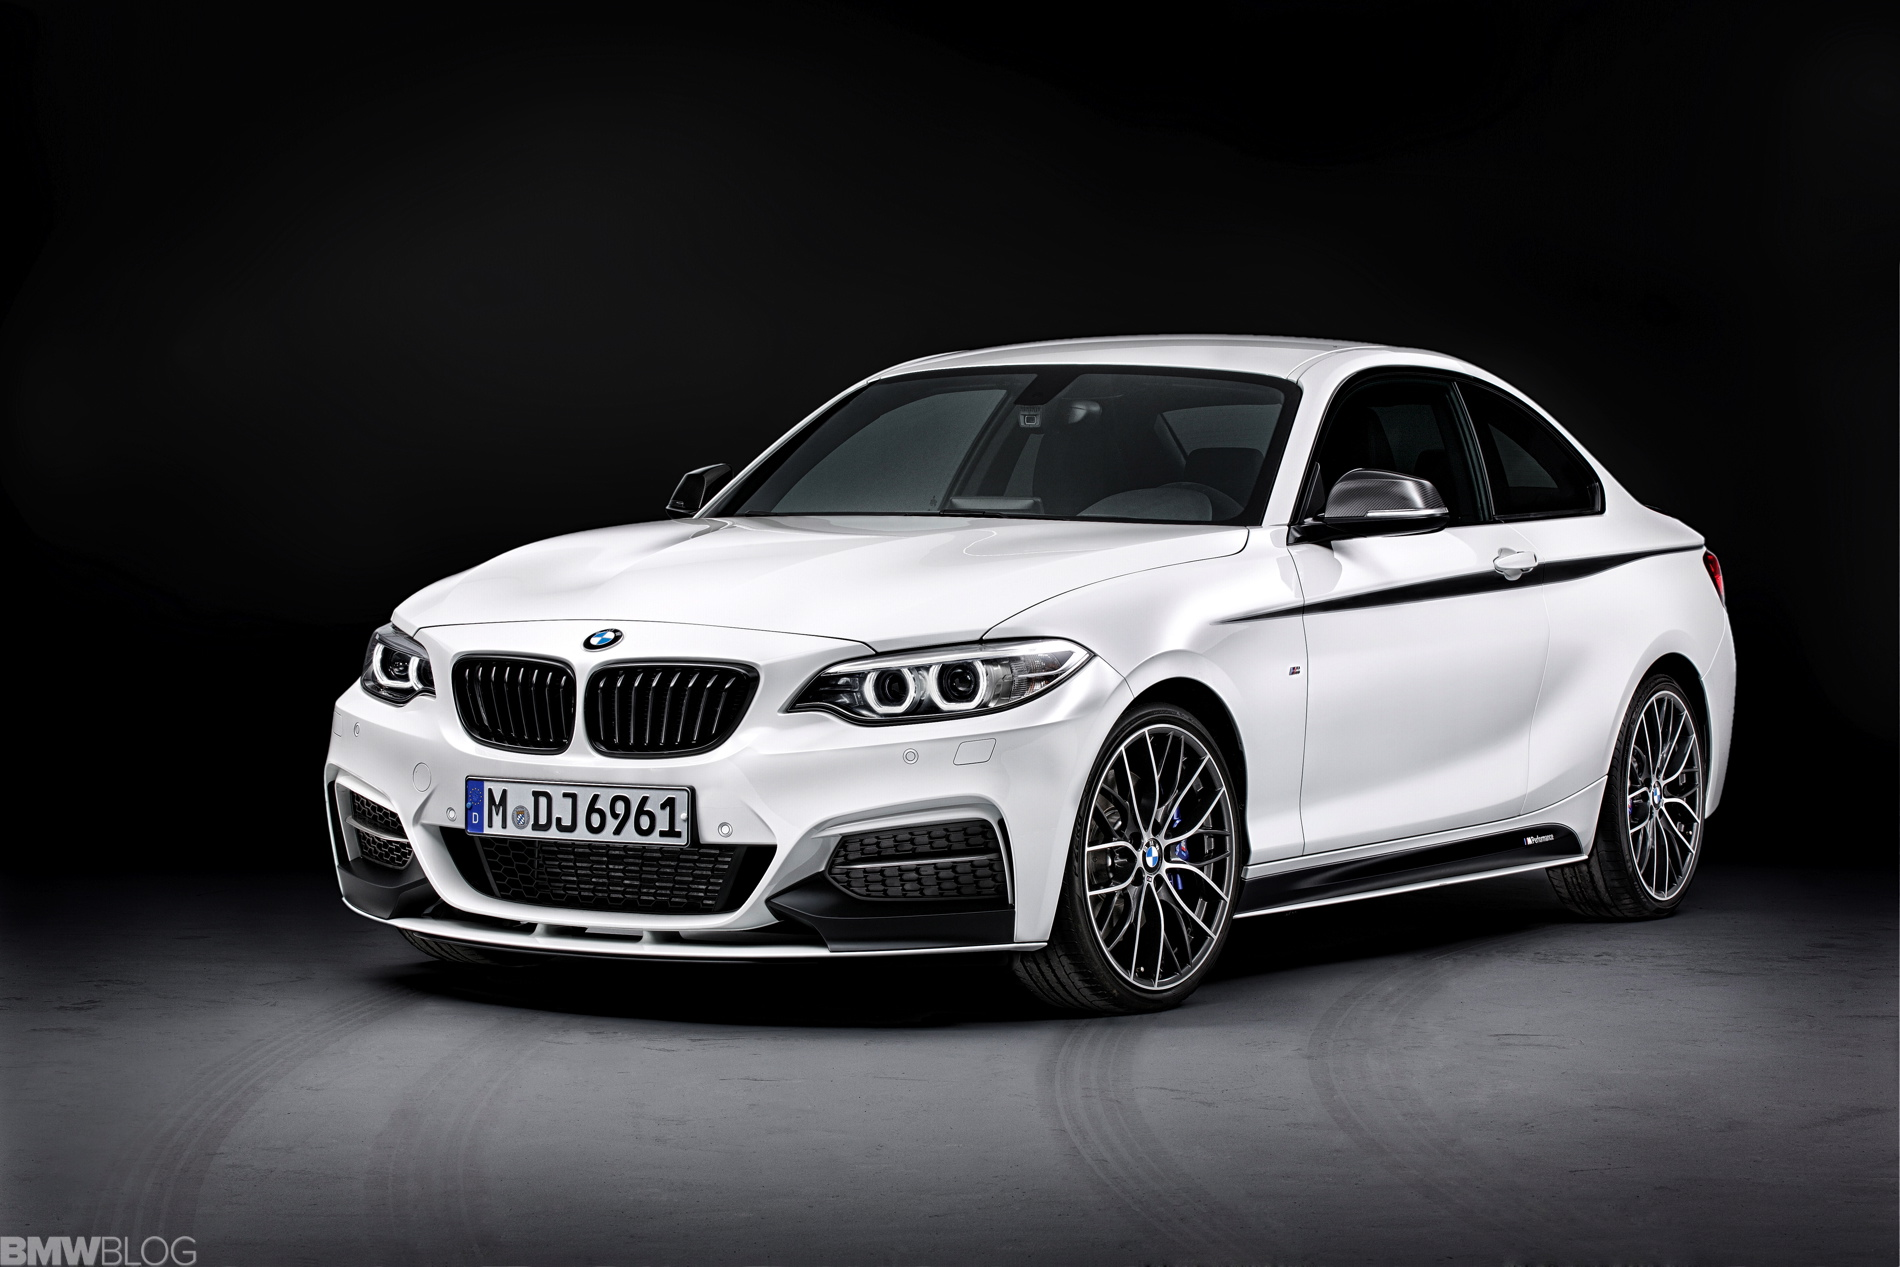 bmw 2 series coupe with m performance partsbmw 2 series coupe m performance parts 01 750x500